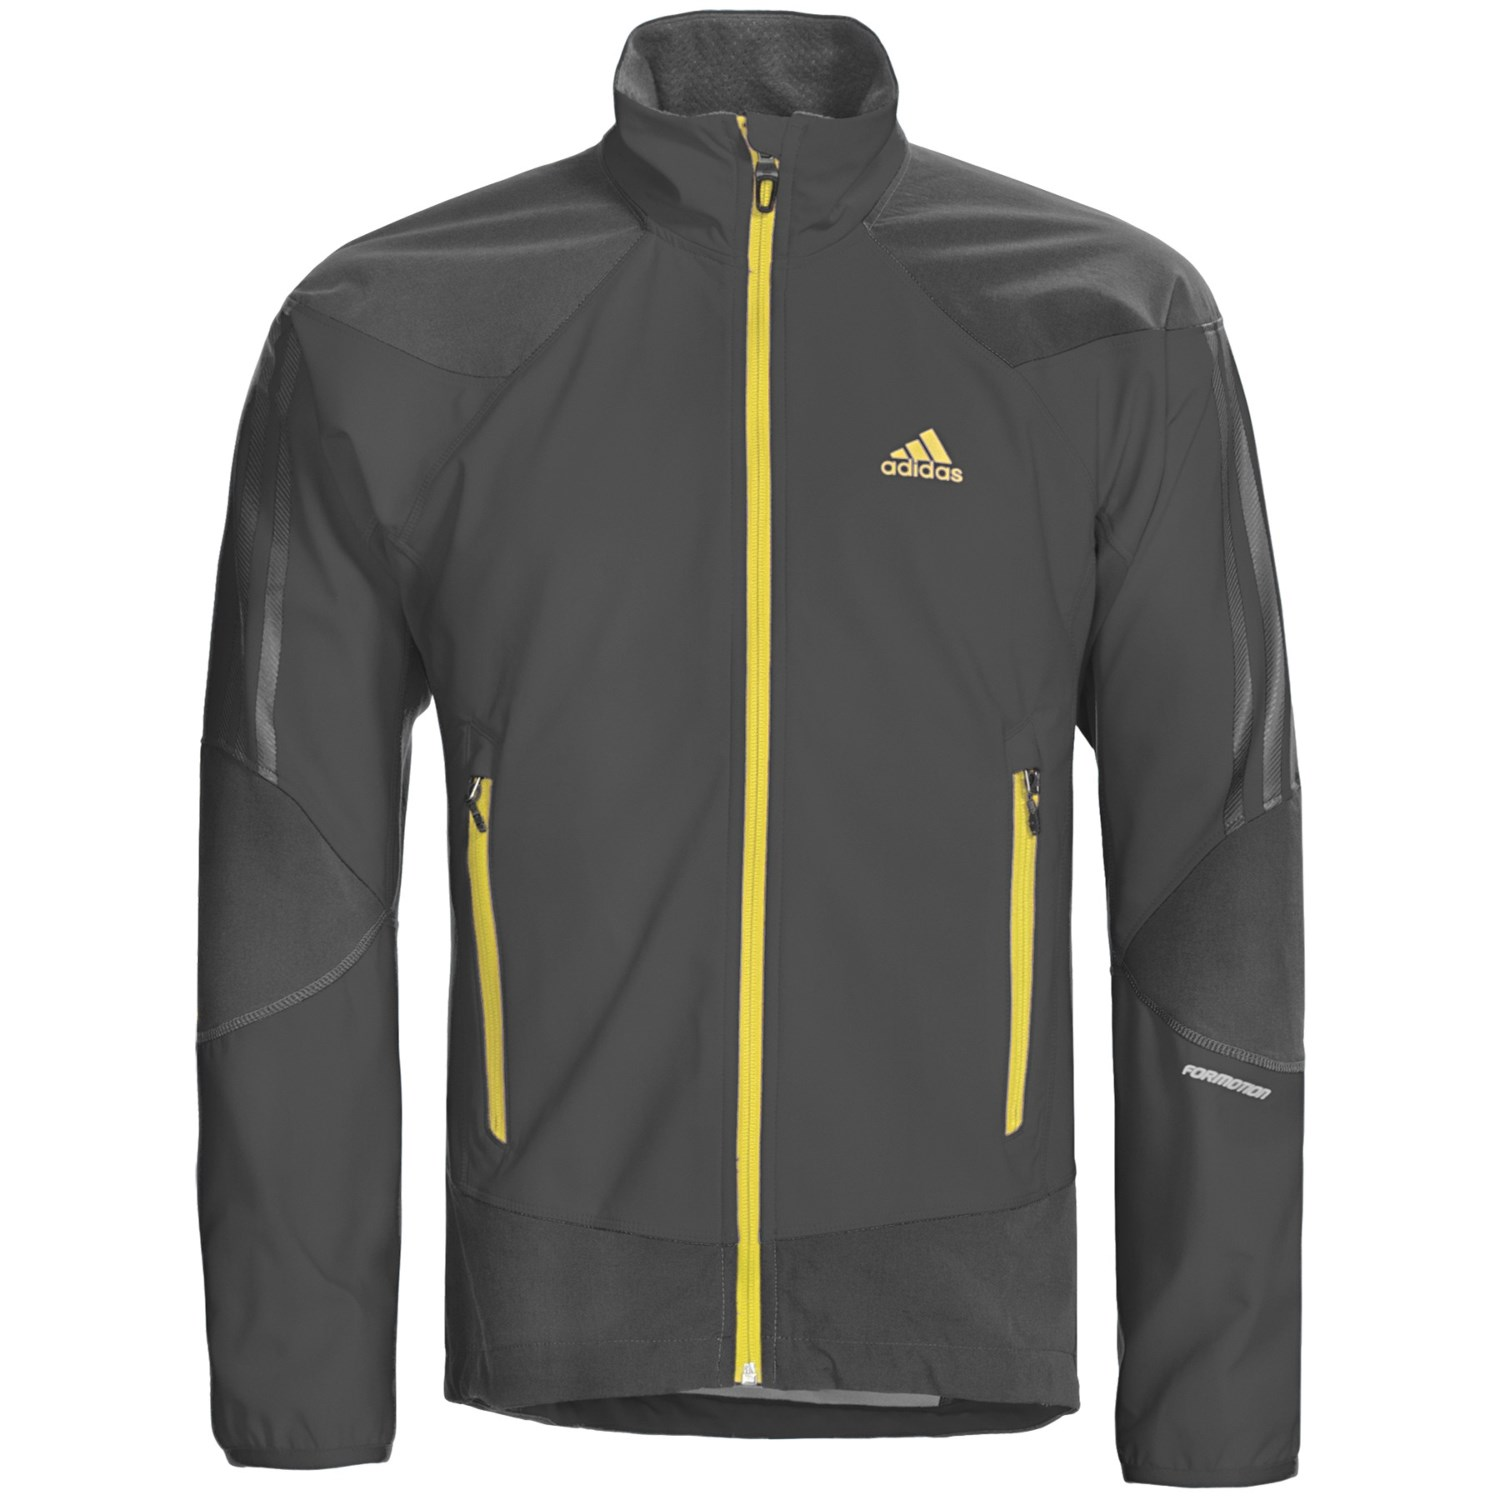 adidas outdoor terrex swift hybrid jacket for men 4992f. Black Bedroom Furniture Sets. Home Design Ideas